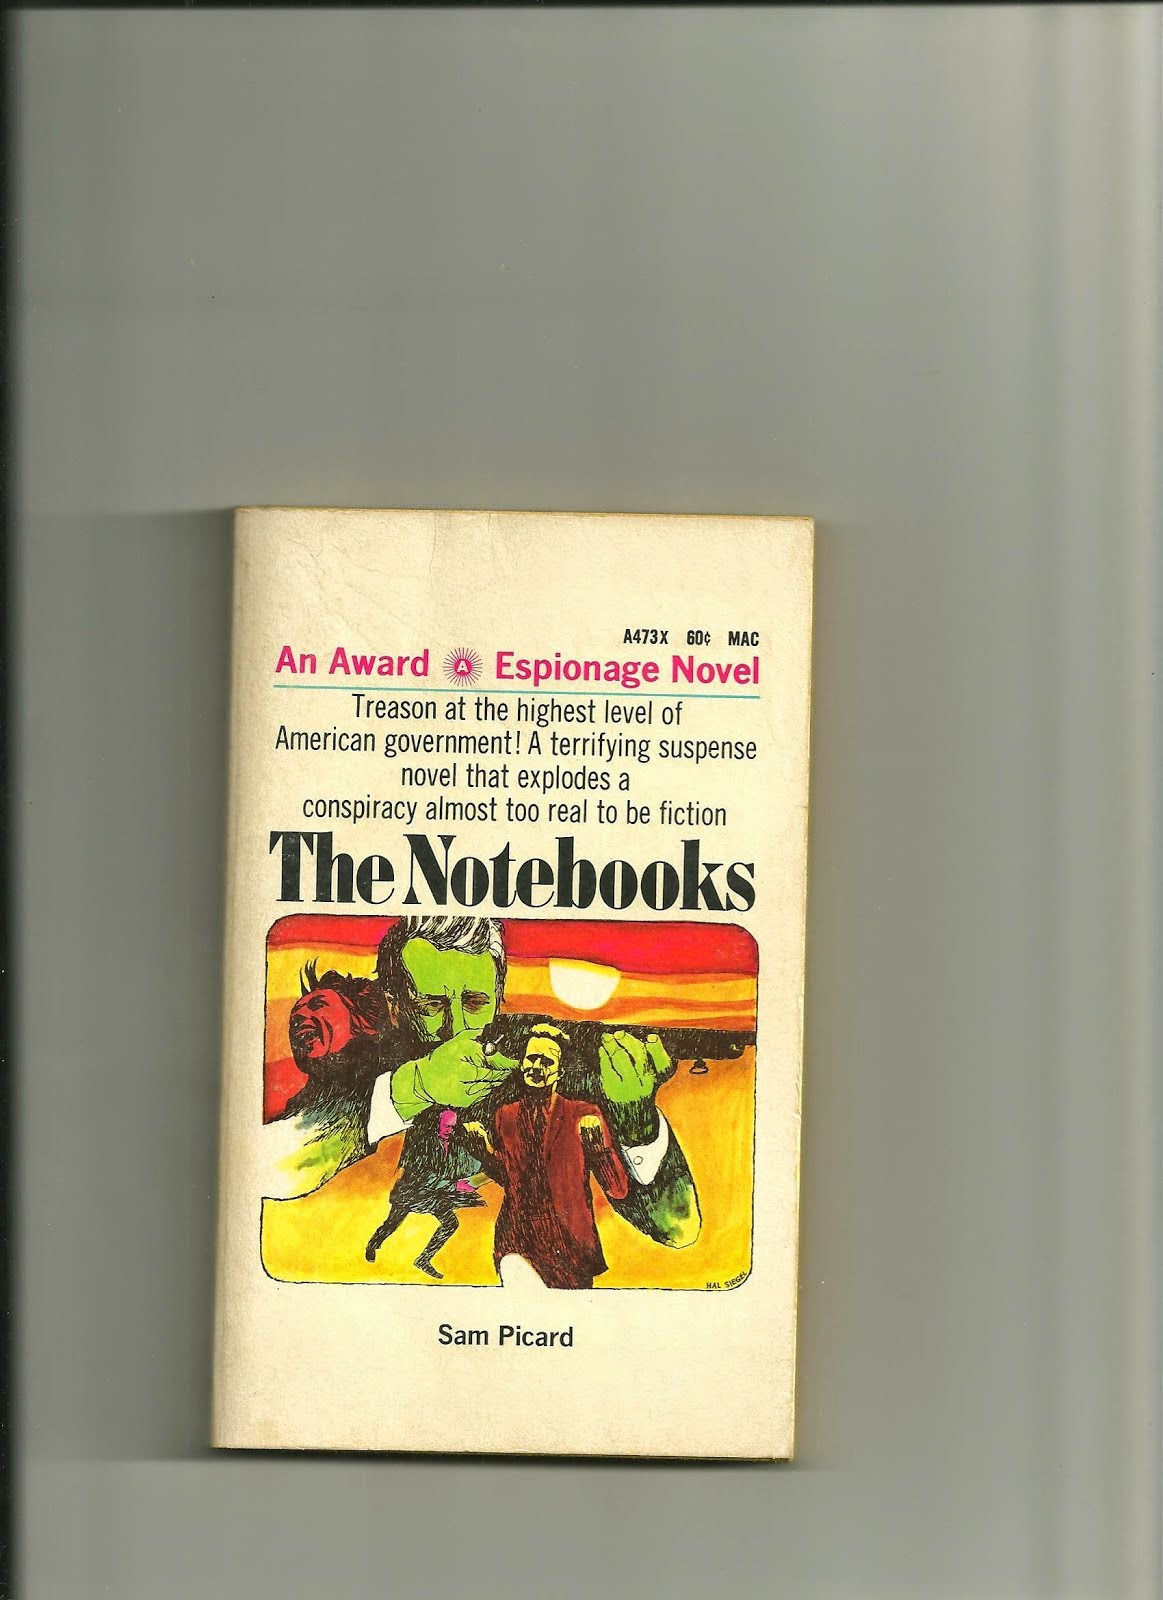 THE NOTEBOOKS by Sam Picard